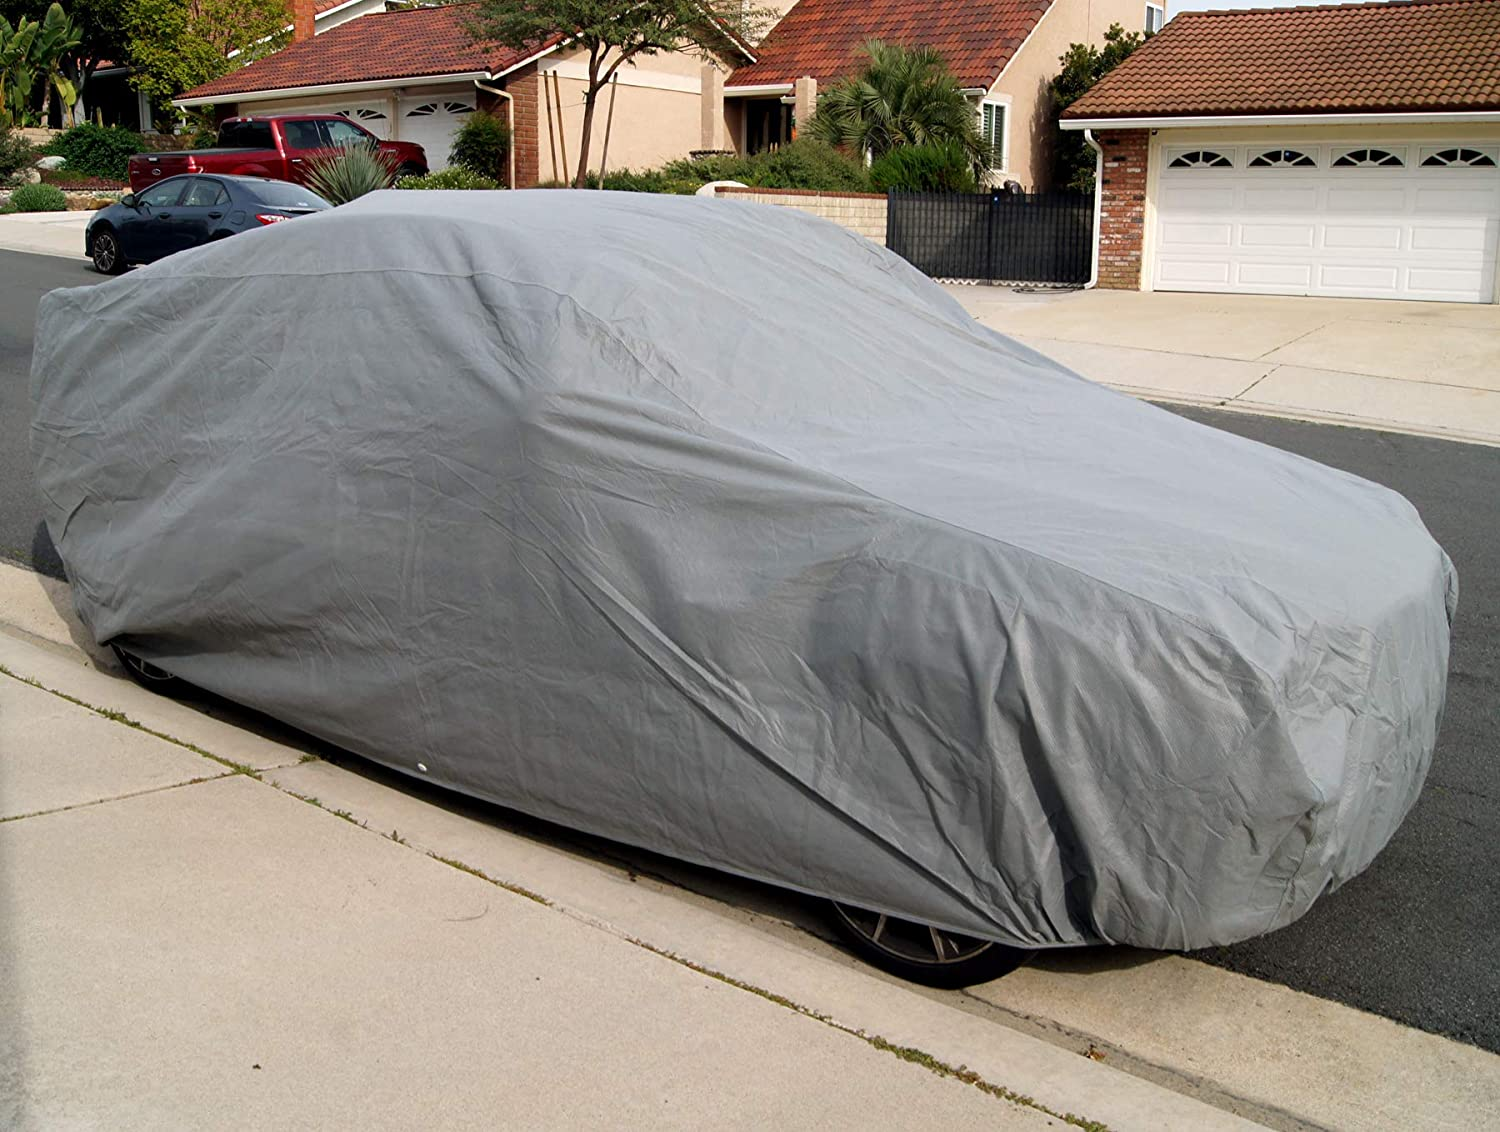 Tuningpros CC-U5 Multiple Layers Non-Woven Fabric Car Cover Waterproof Rain Barrier Fit up to Size 200.0